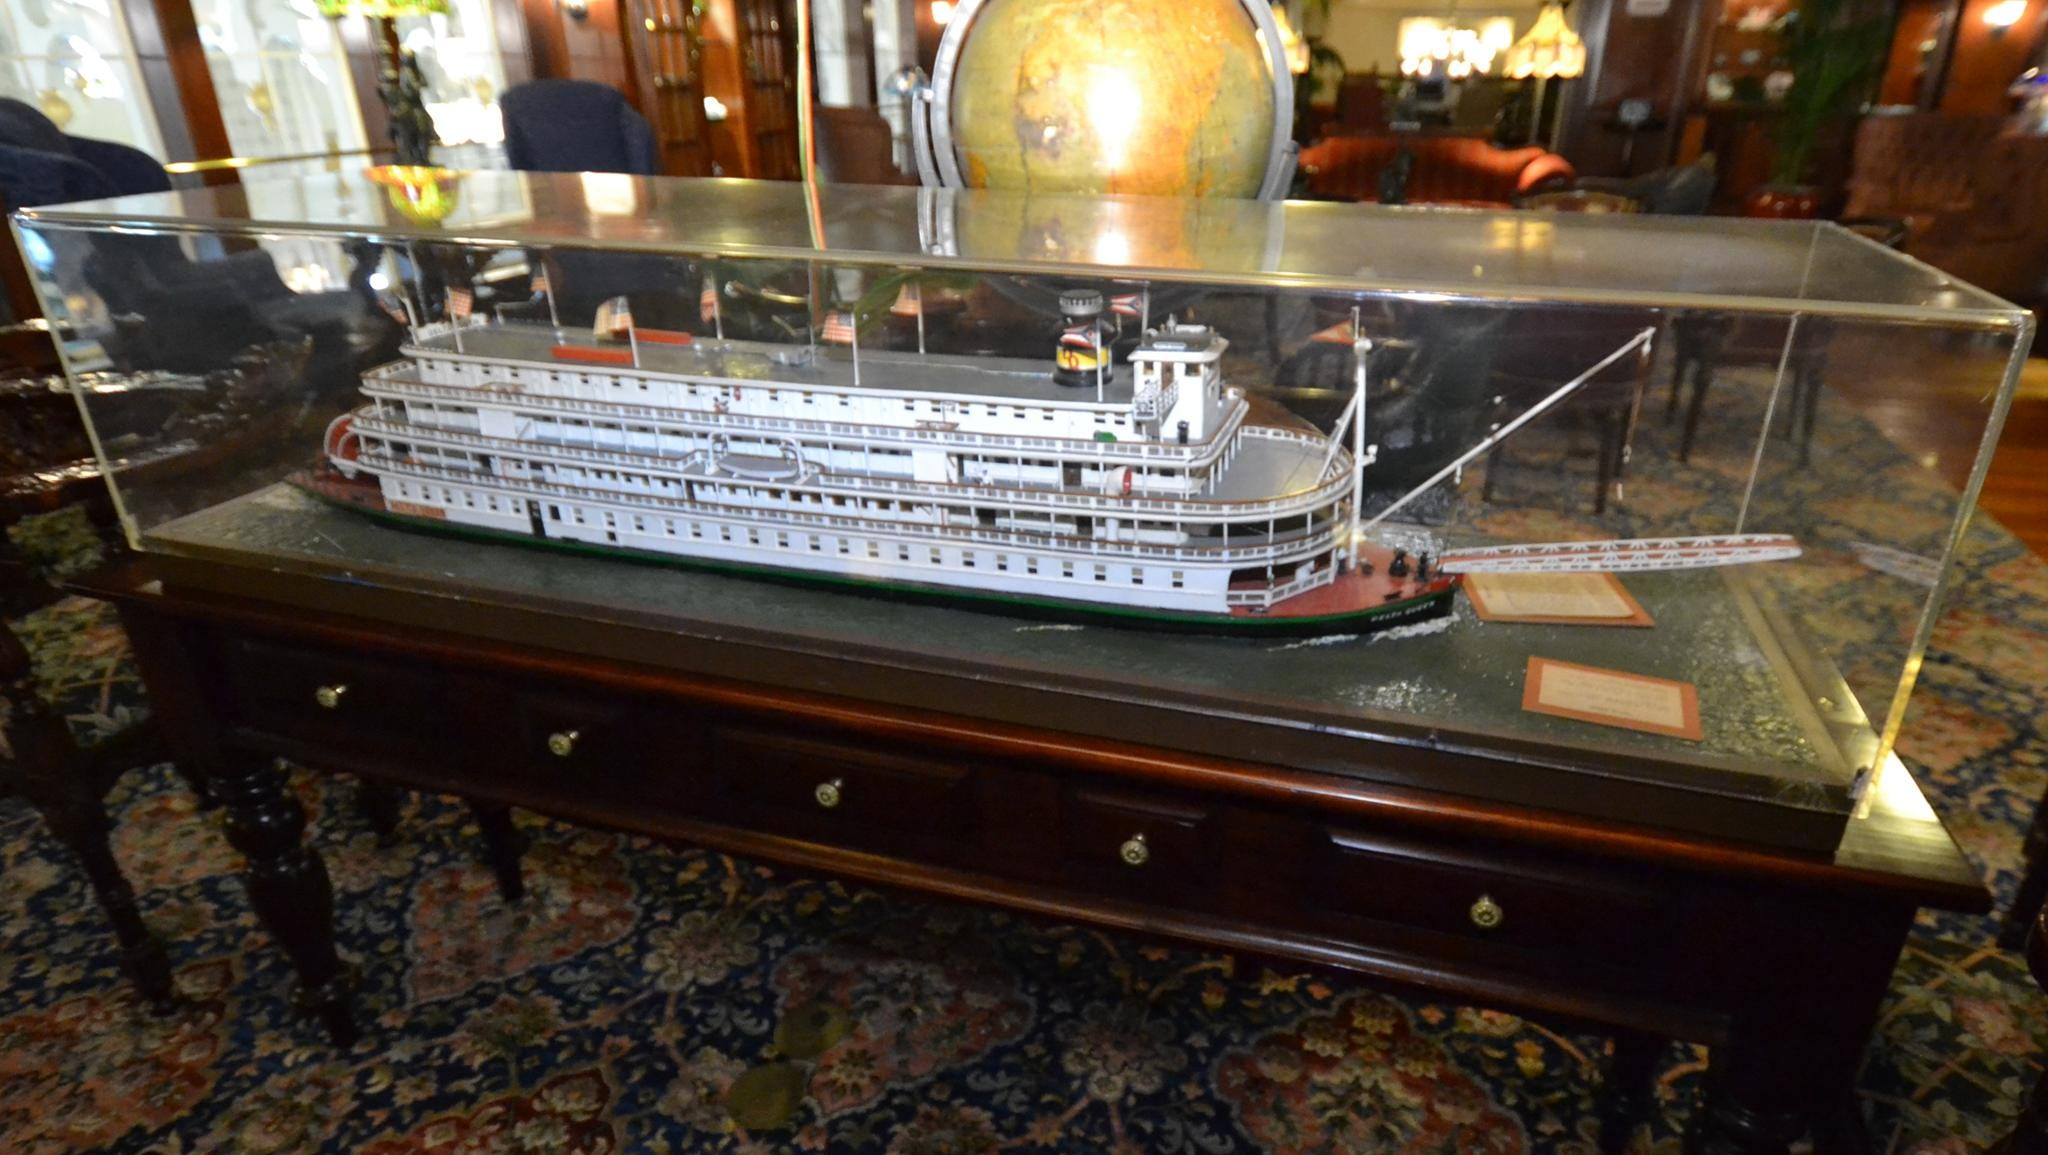 A highlight of the Mark Twain Gallery is a model of the 1920s-era Delta Queen, which sailed alongside the American Queen until 2008.